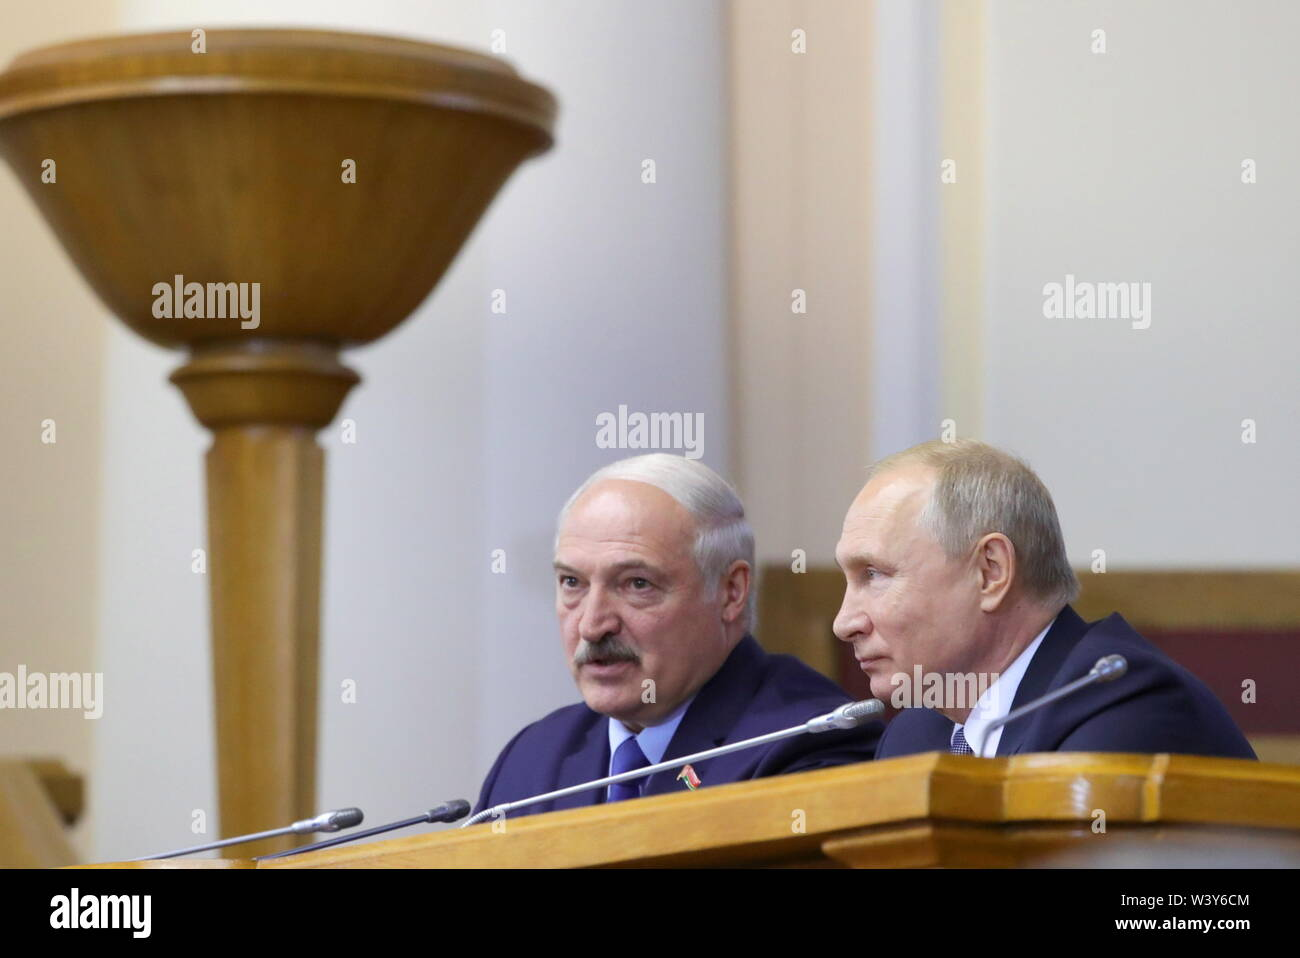 St Petersburg, Russia. 18th July, 2019. ST PETERSBURG, RUSSIA - JULY 18, 2019: Belarus' President Alexander Lukashenko (L) and Russia's President Vladimir Putin attend a plenary meeting at the 5th Belarus-Russia Forum of Regions, Tauride Palace. Mikhail Klimentyev/Russian Presidential Press and Information Office/TASS Credit: ITAR-TASS News Agency/Alamy Live News - Stock Image